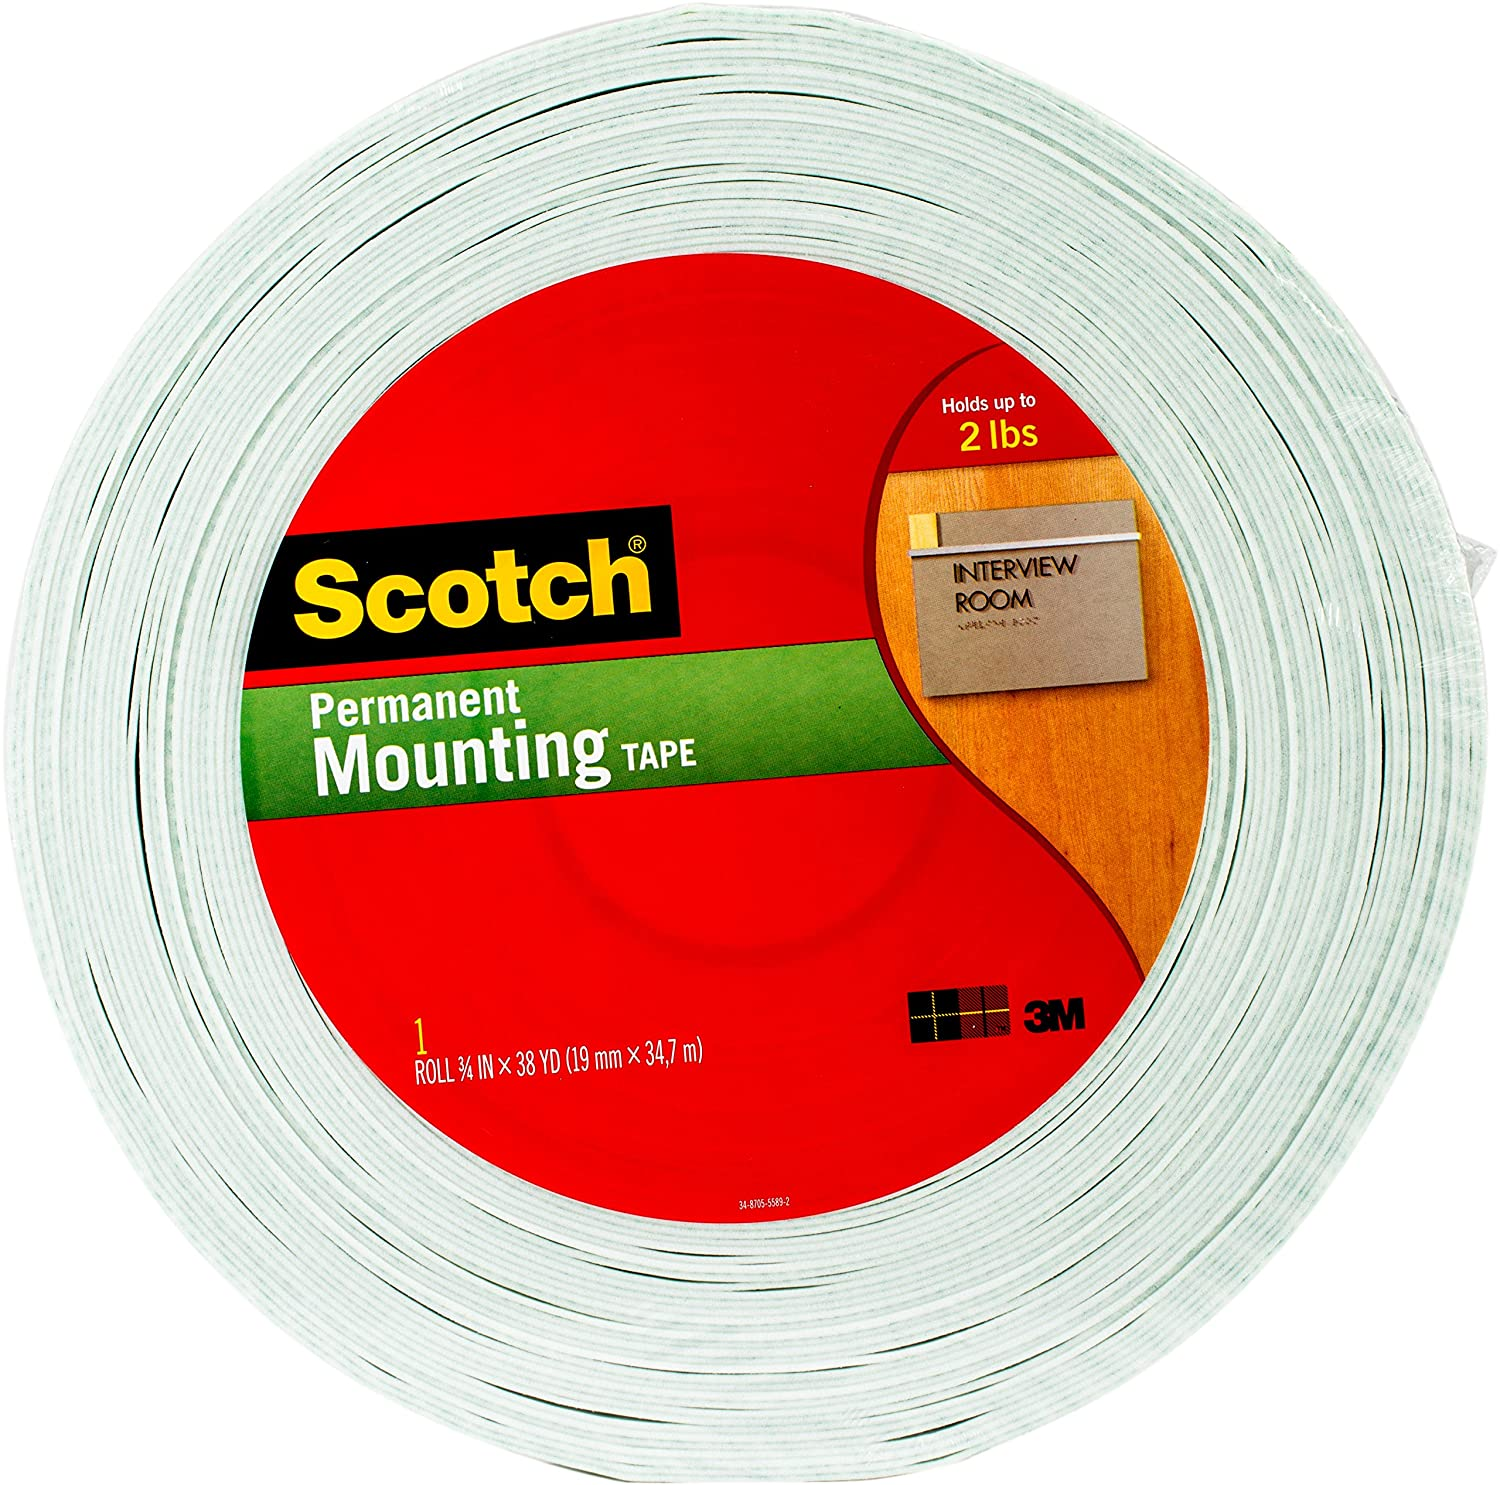 Scotch Indoor Mounting Tape, 3/4-inch x 38-yards, White, 1-Roll (110-MR) 3M Office Products